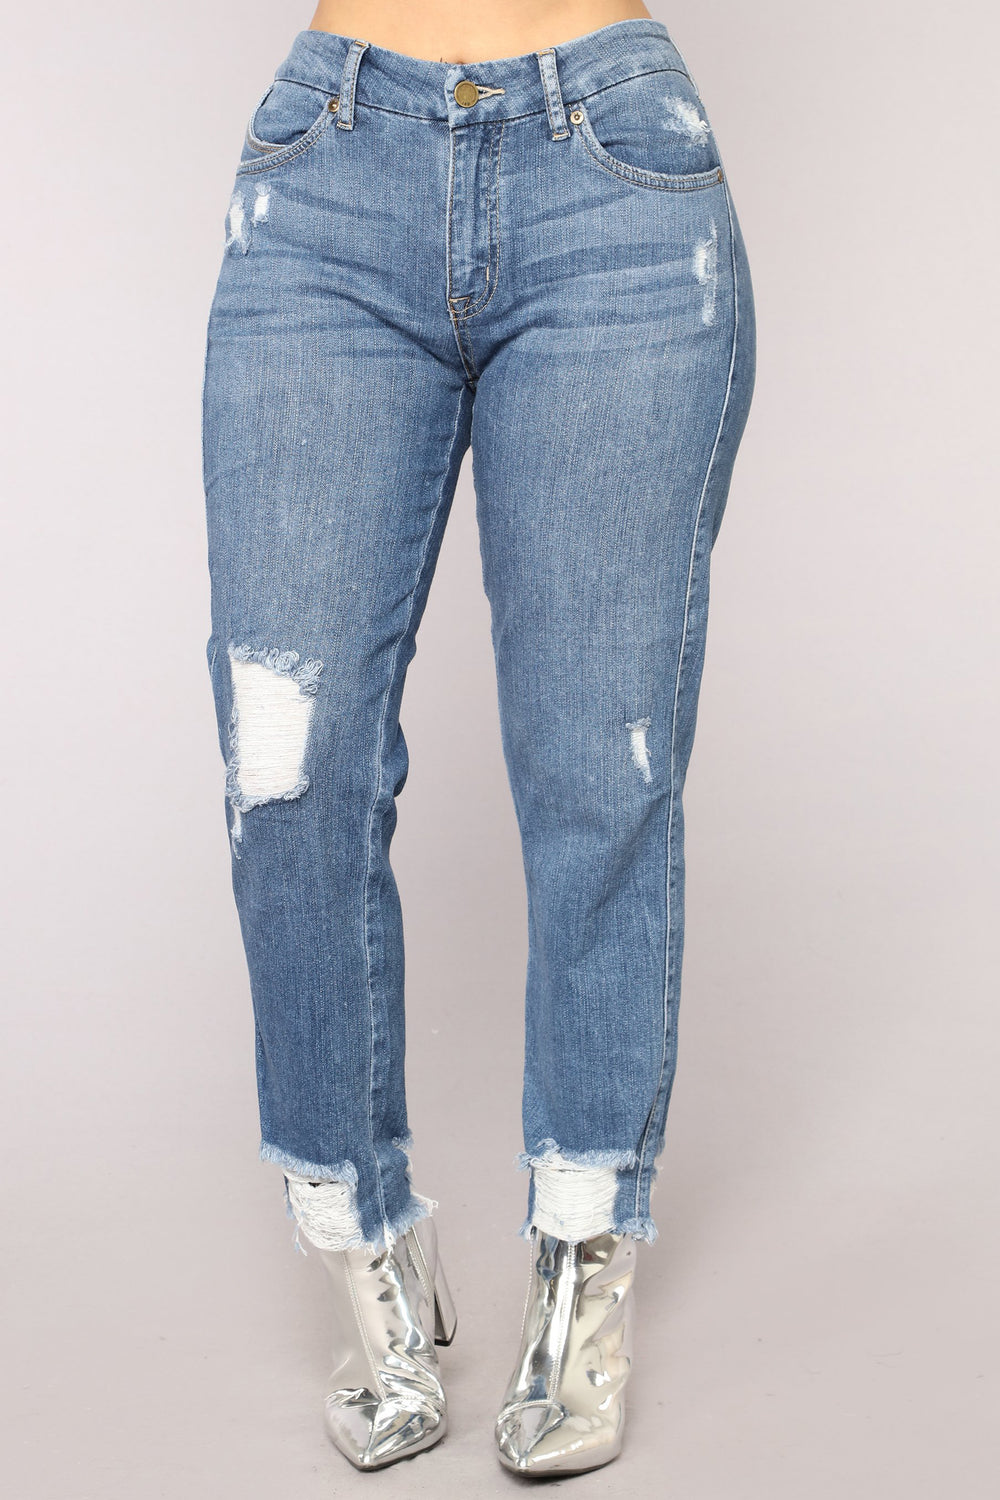 Misty High Rise Jeans - Medium Blue Wash